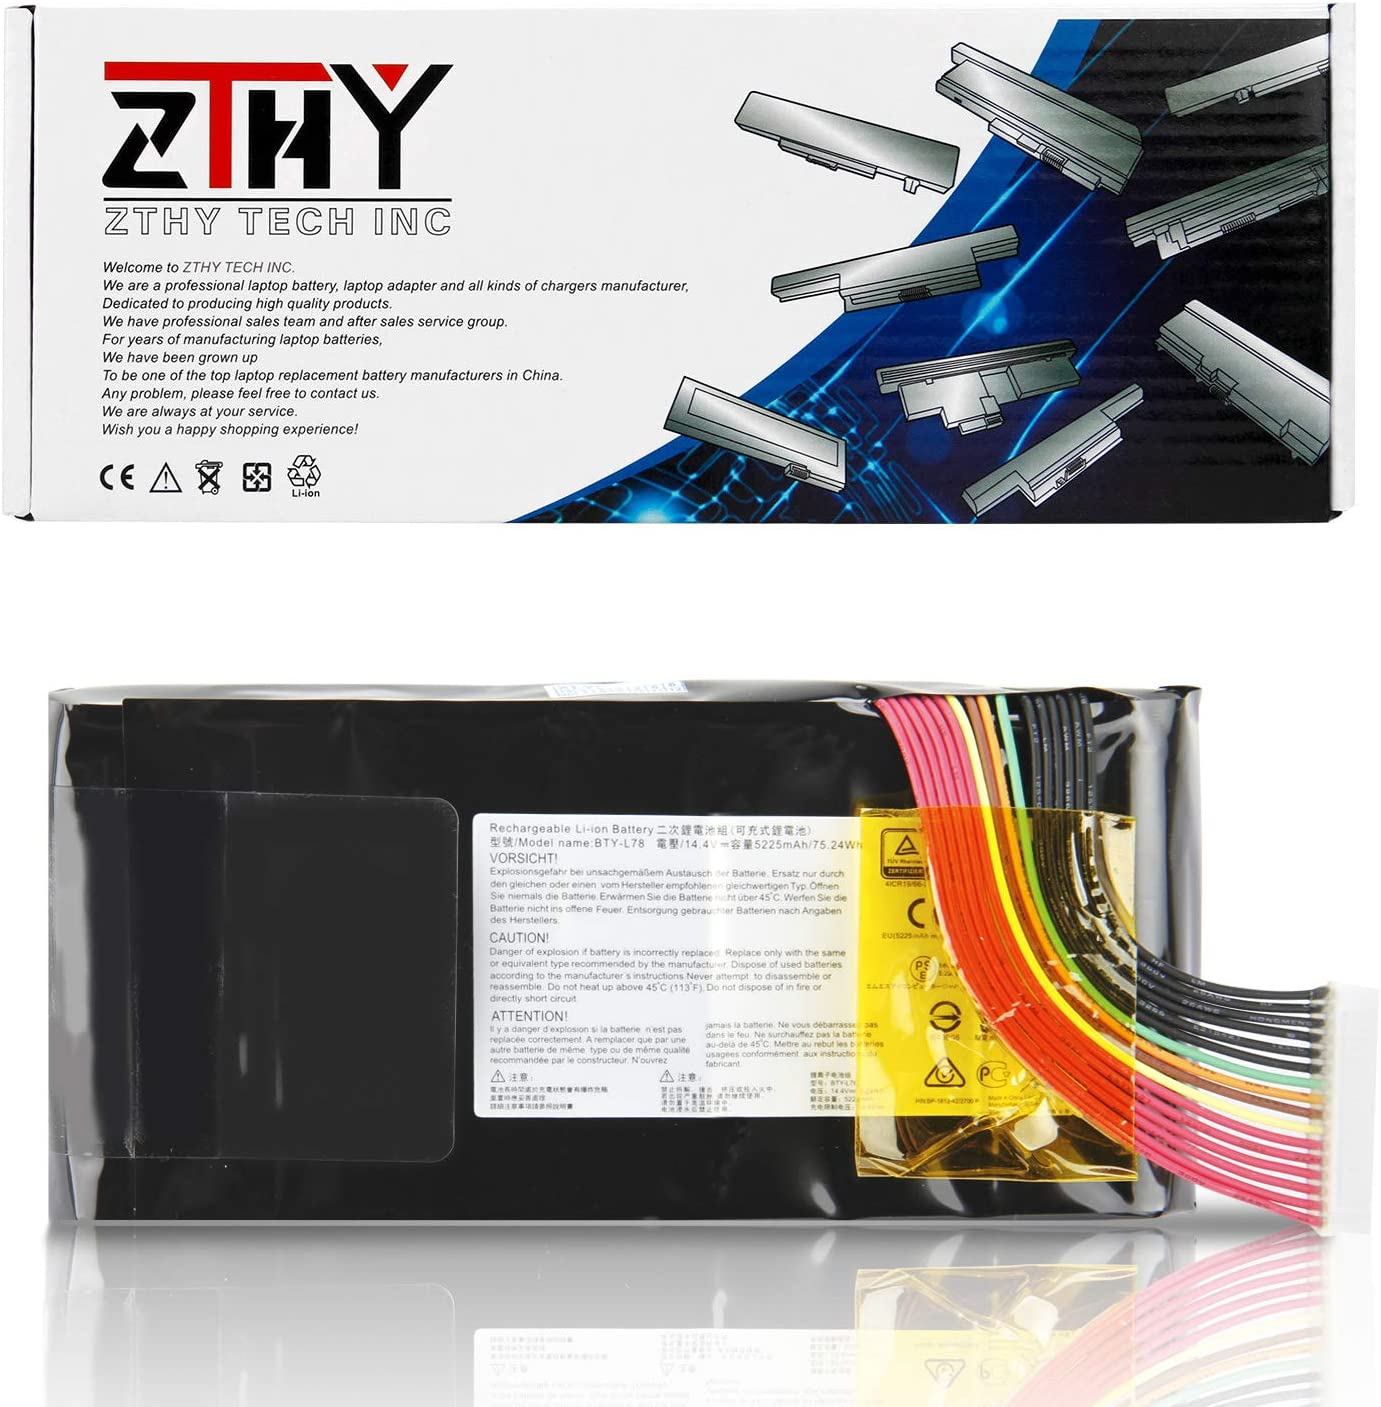 ZTHY New BTY-L78 Laptop Battery for MSI GT62VR 6RD 6RD-033CN 6RD-093XCN GT73 GT73VR 6RE-013CN GT80 2QC-221CN GT62VR 7RD Dominator Titan GT80S GT83 GT83VR GT83 GT83VR 6RE-007CN 14.4V 75.24Wh